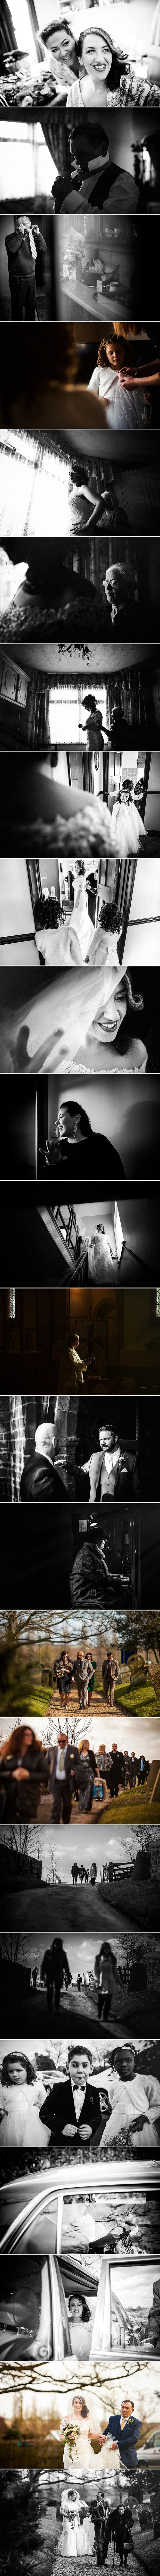 Dodford manor alternative wedding photography 2